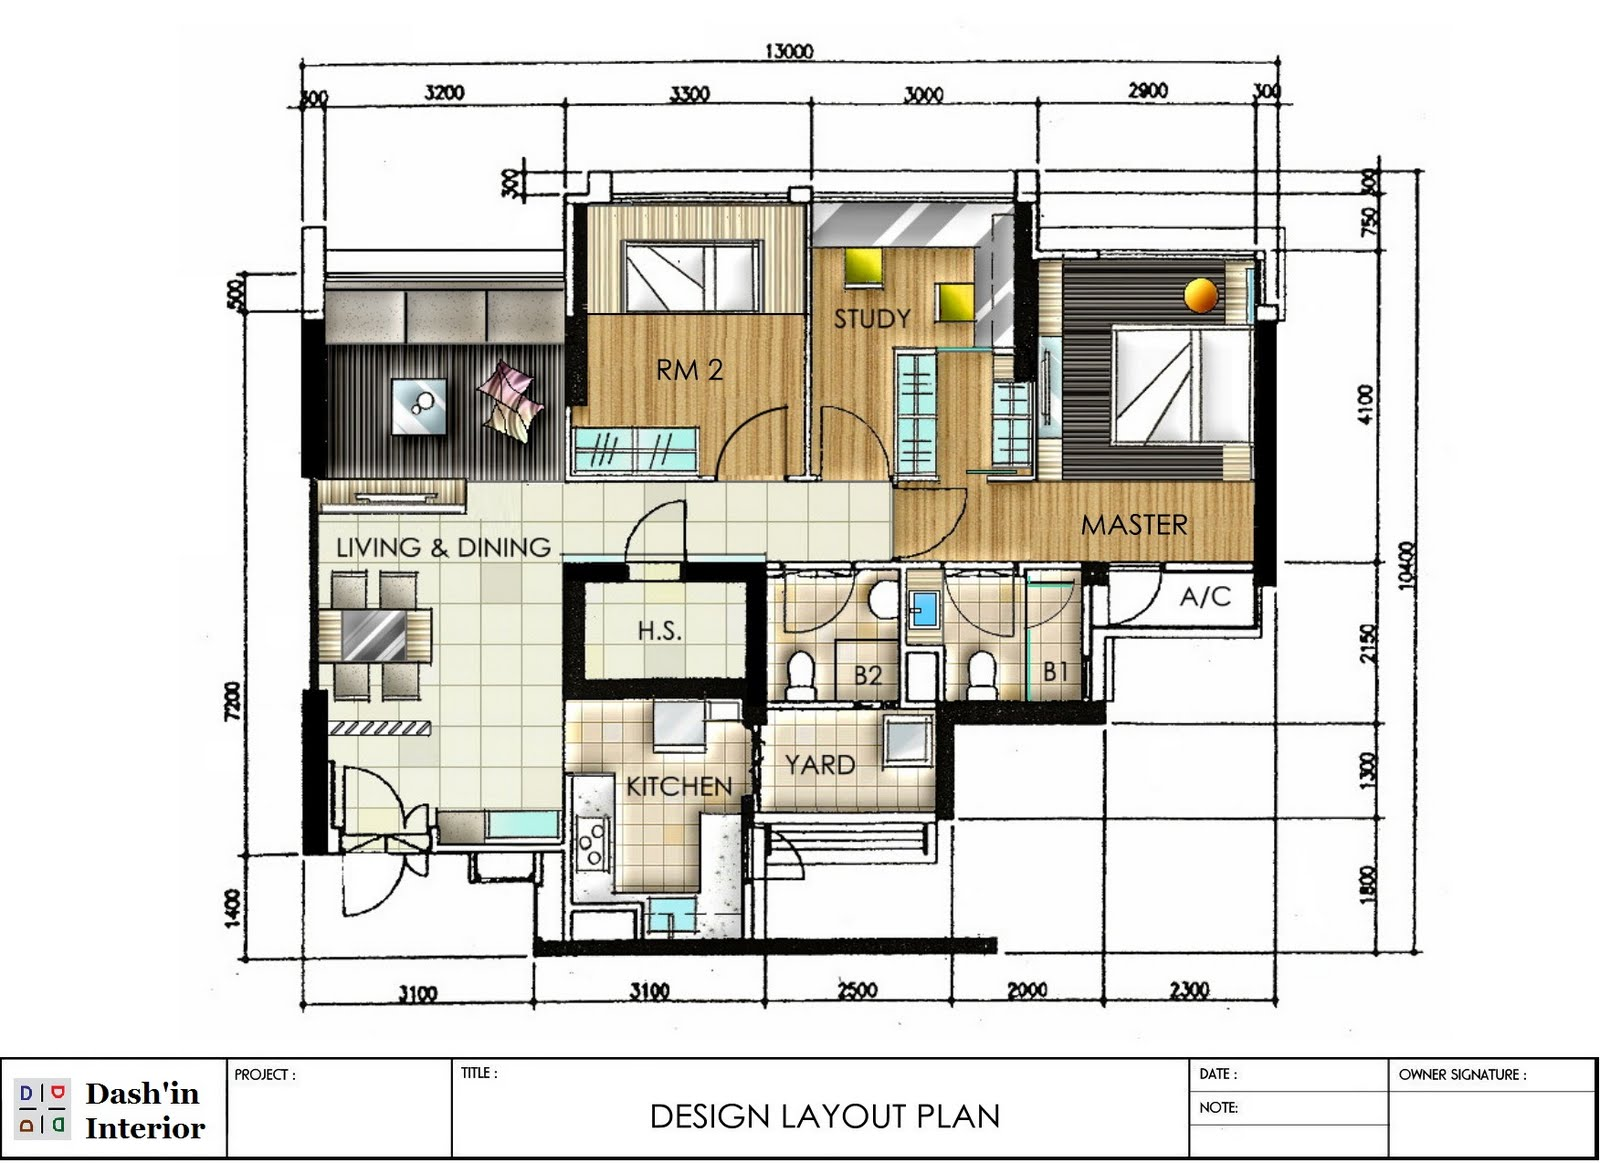 Stunning floor plan layout design 24 photos house plans for Building plans and designs